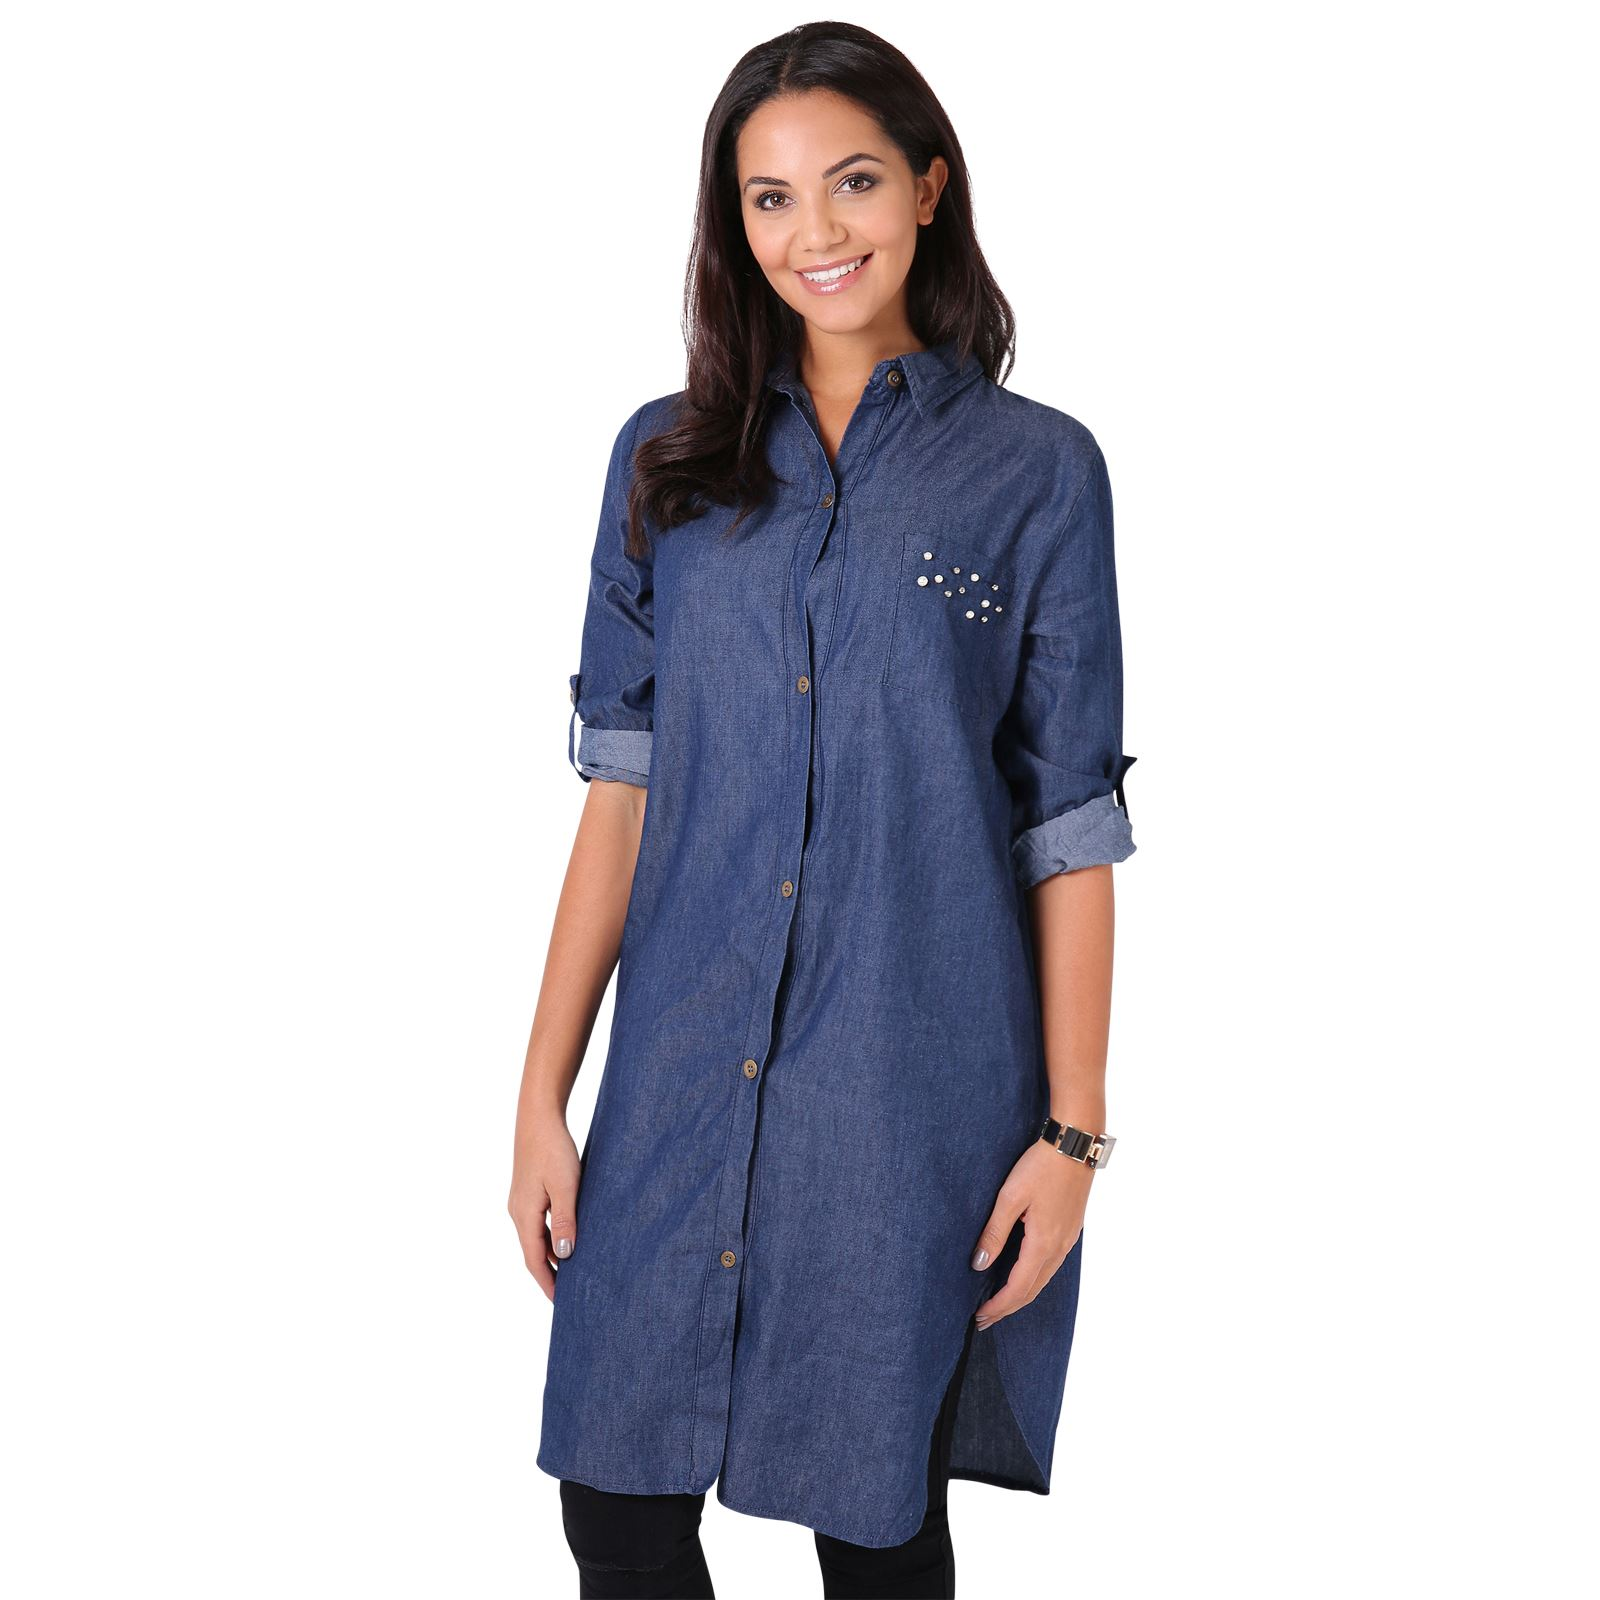 New Buy Cheap Denim Tunic Dress - Compare Womenu0026#39;s Dresses U0026 Skirts Prices For Best UK Deals